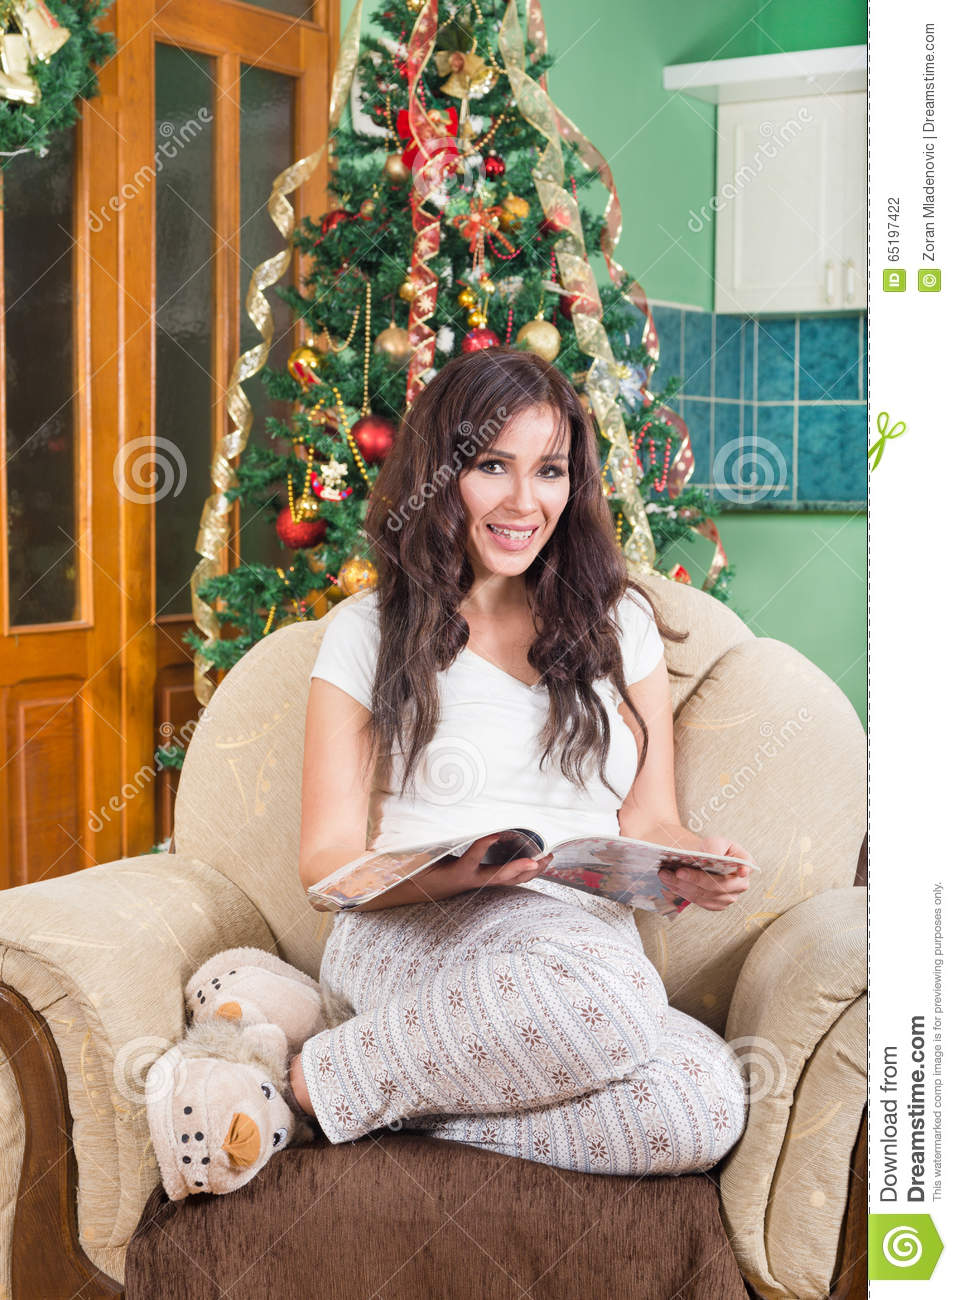 d5c8daf5466e9b Pretty Young Woman Reading Magazine Sitting on Sofa Smiling Wearing Pajamas  and Fluffy Slippers with Christmas Tree Behind , Home and Leisure Concept